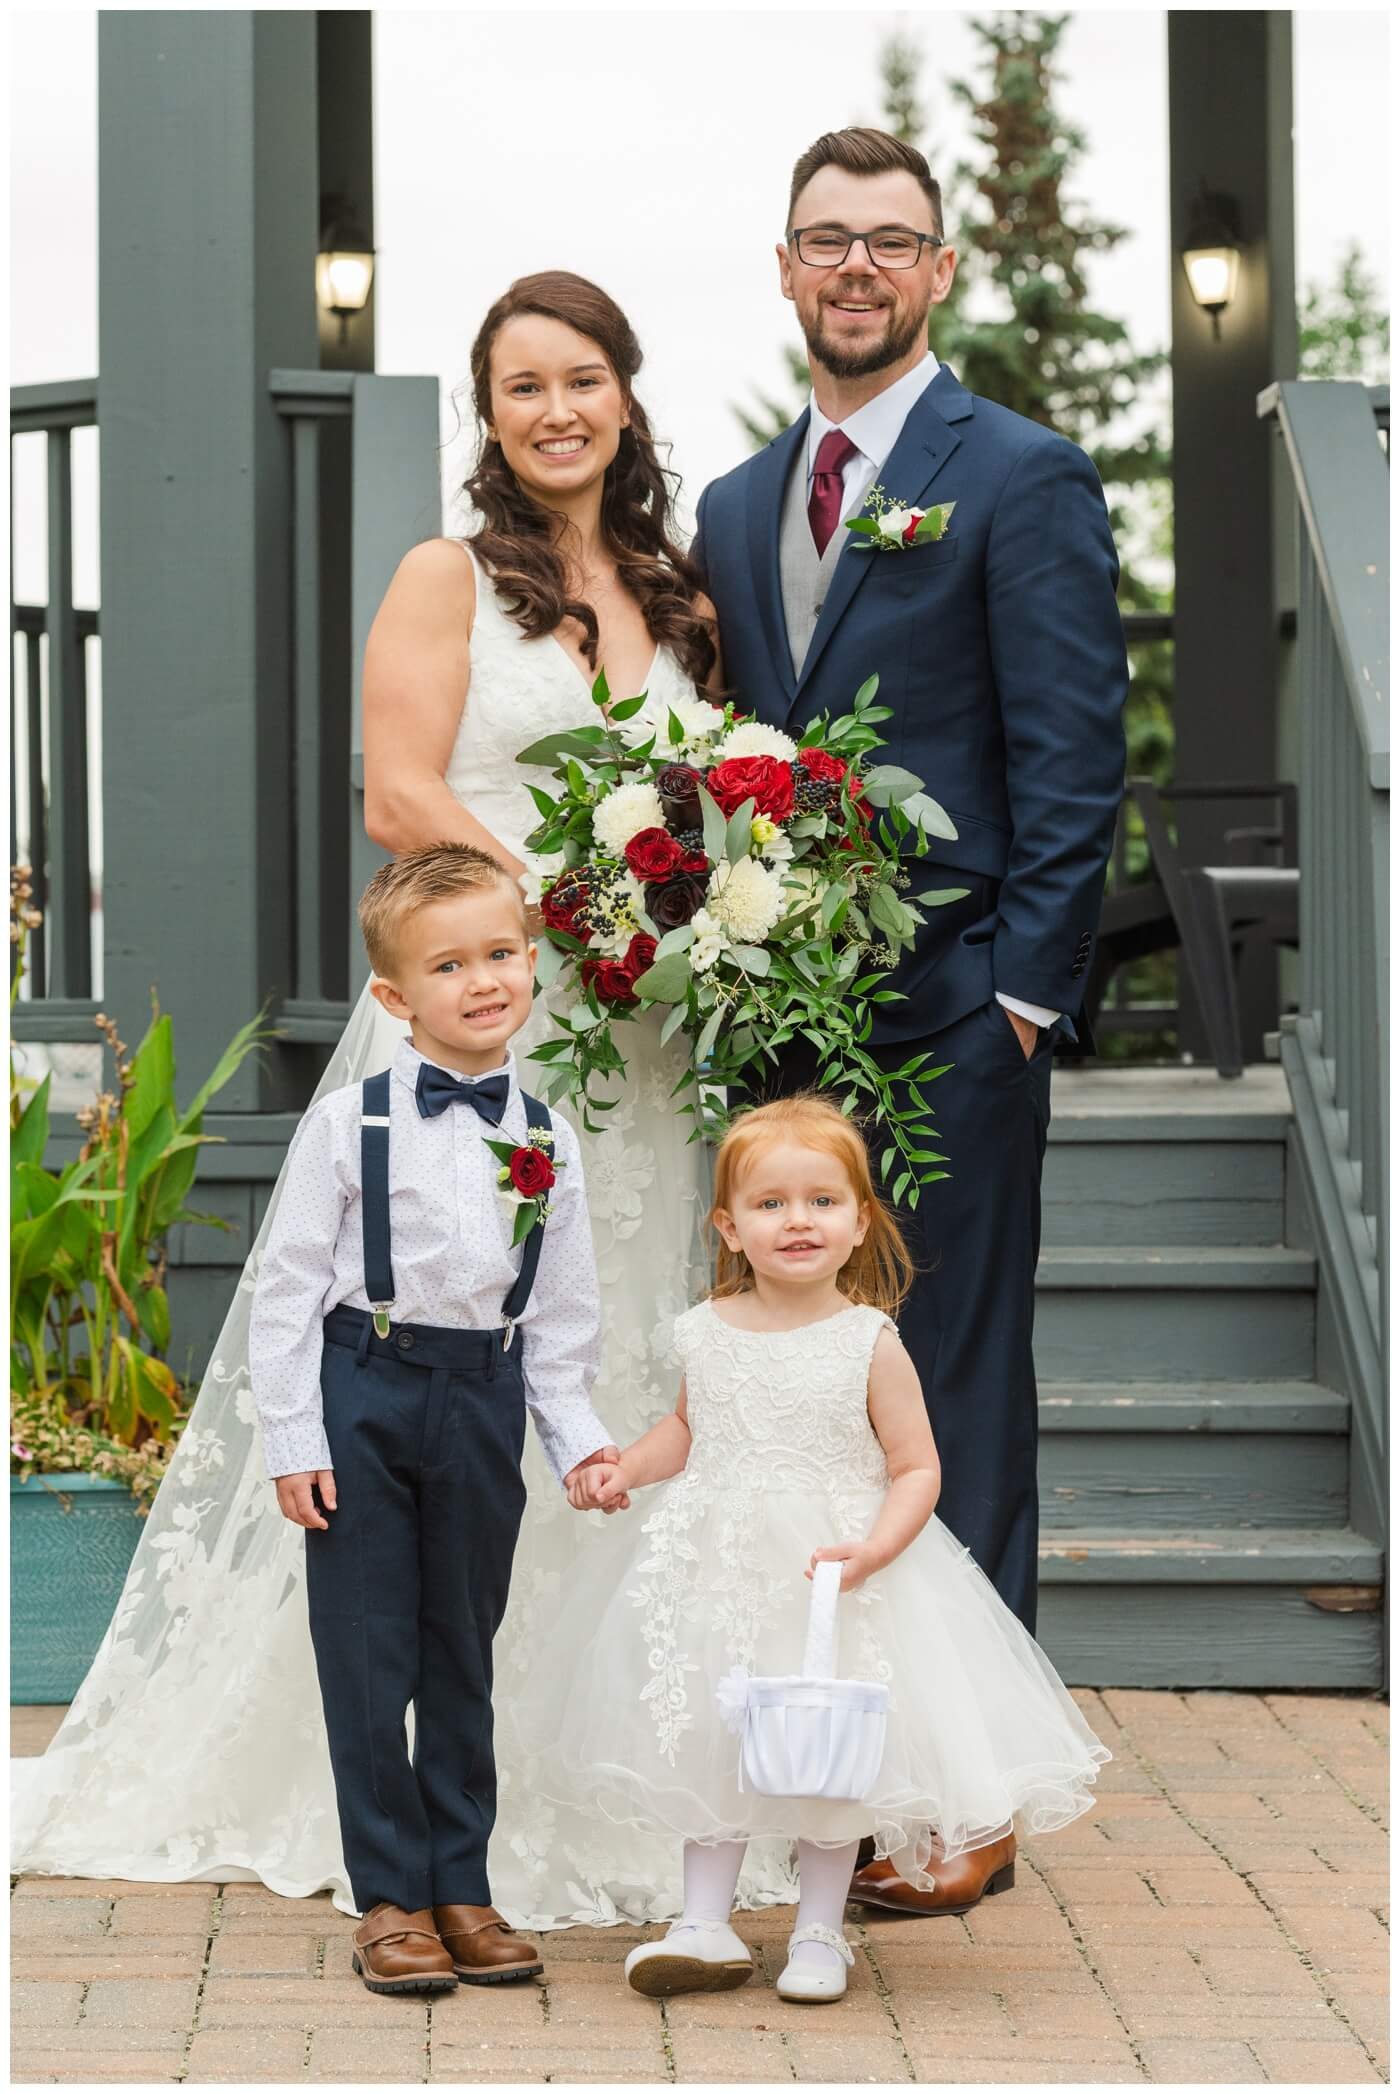 Andrew & Lacey - 19 - Bride & Groom with Ringbearer and Flowergirl